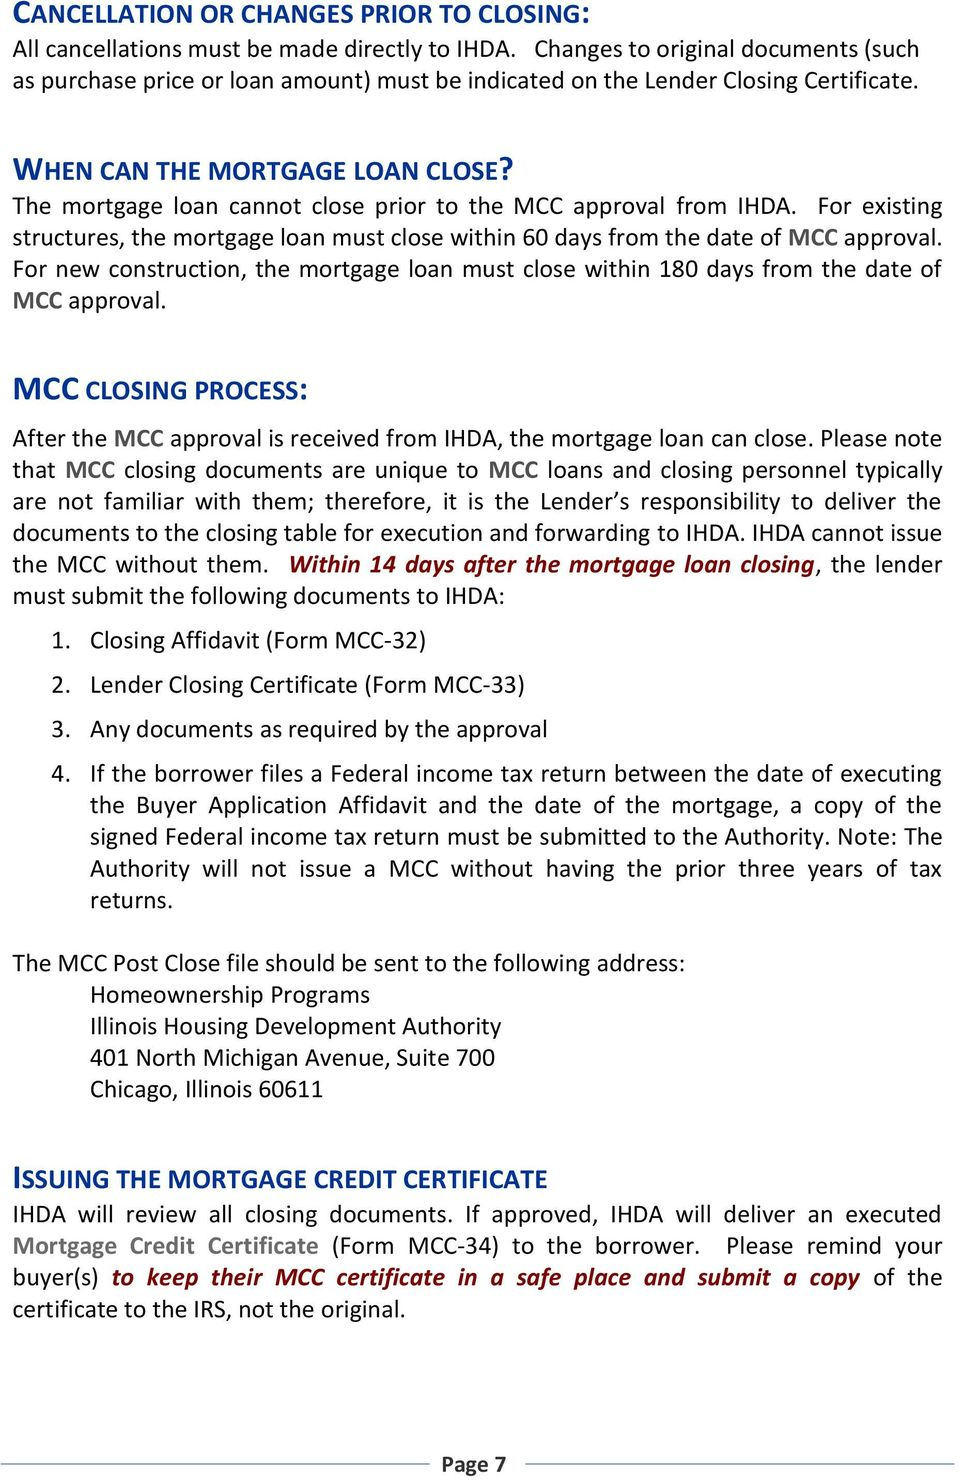 Uncategorized Fha Streamline Refinance Worksheet all grade worksheets fha streamline worksheet mortgage credit certificate mcc procedural guide